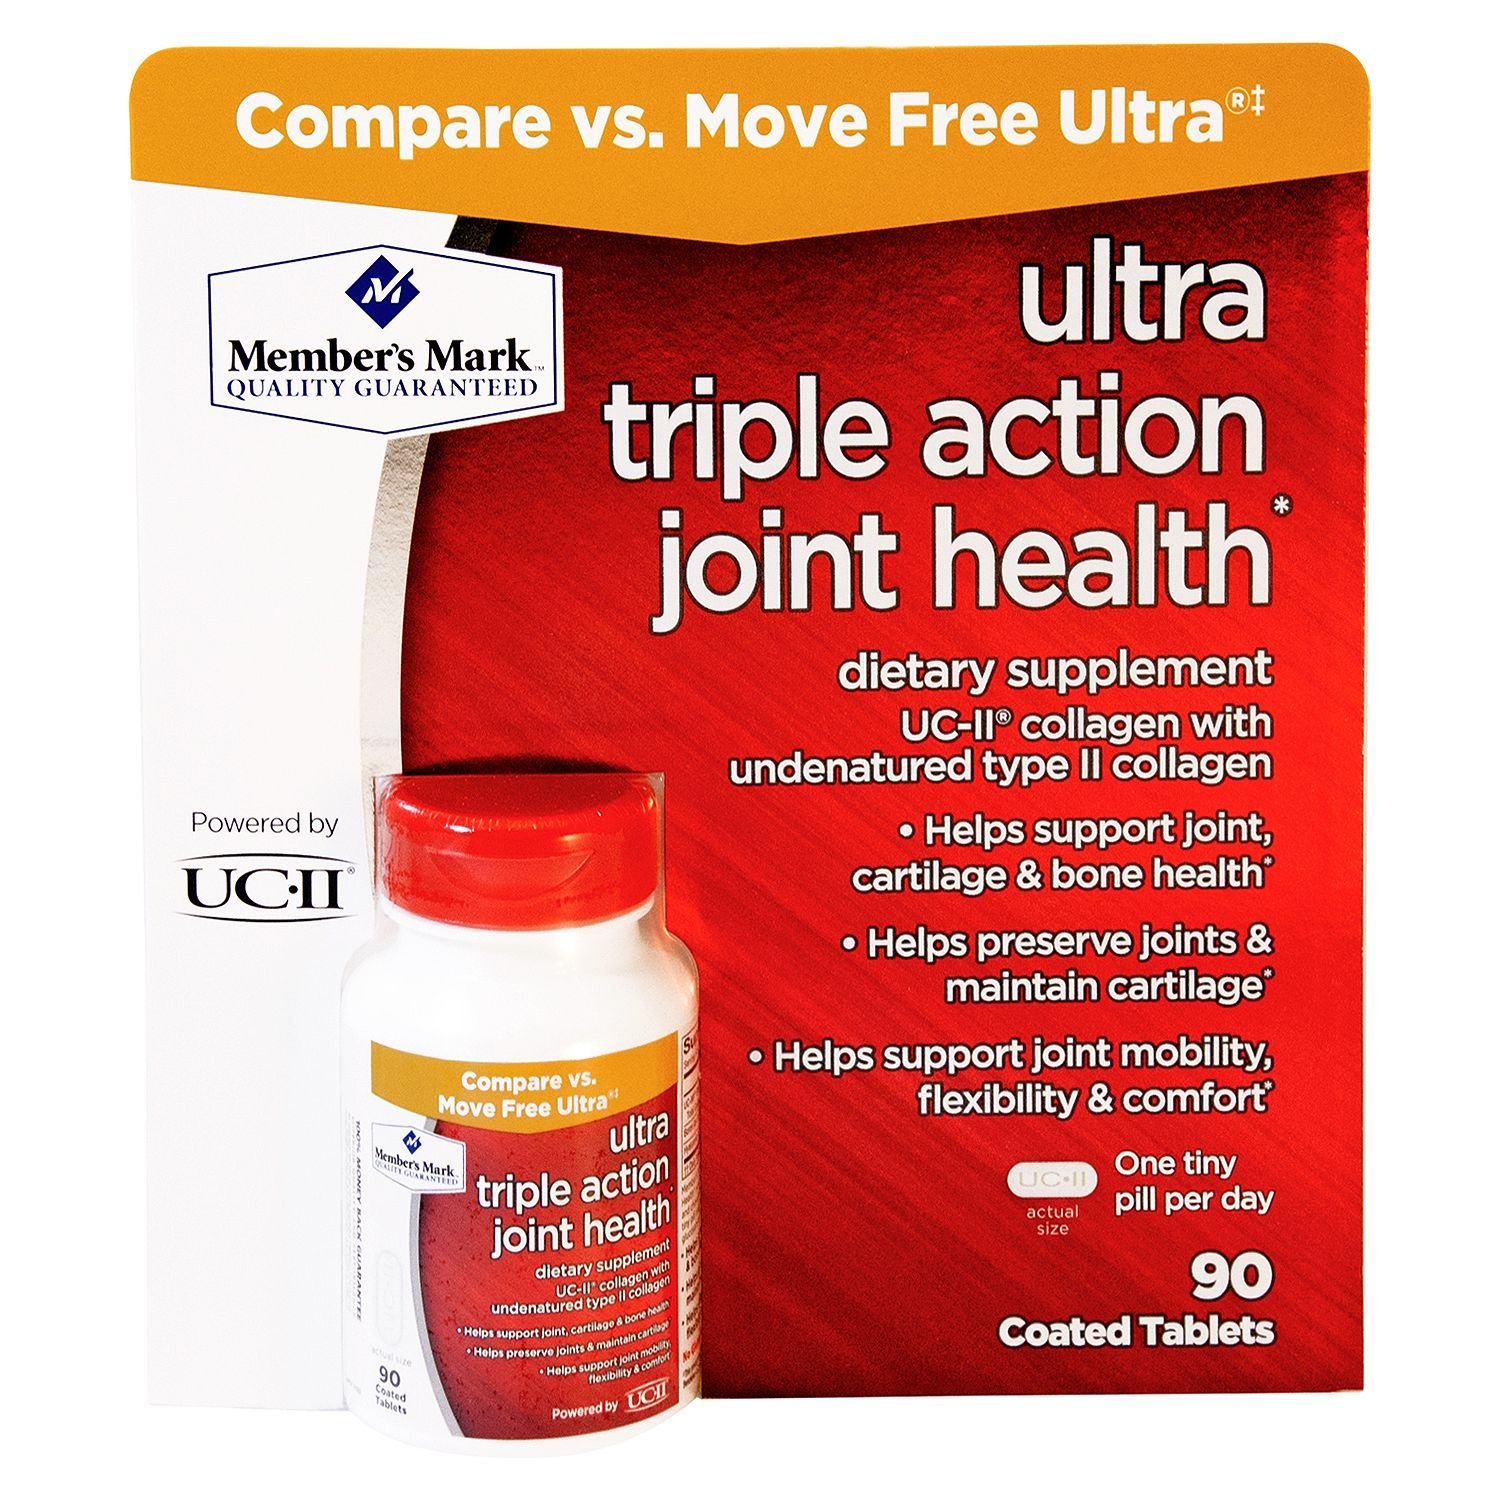 Member's Mark™ Ultra Triple Action Joint Health (pack of 6)